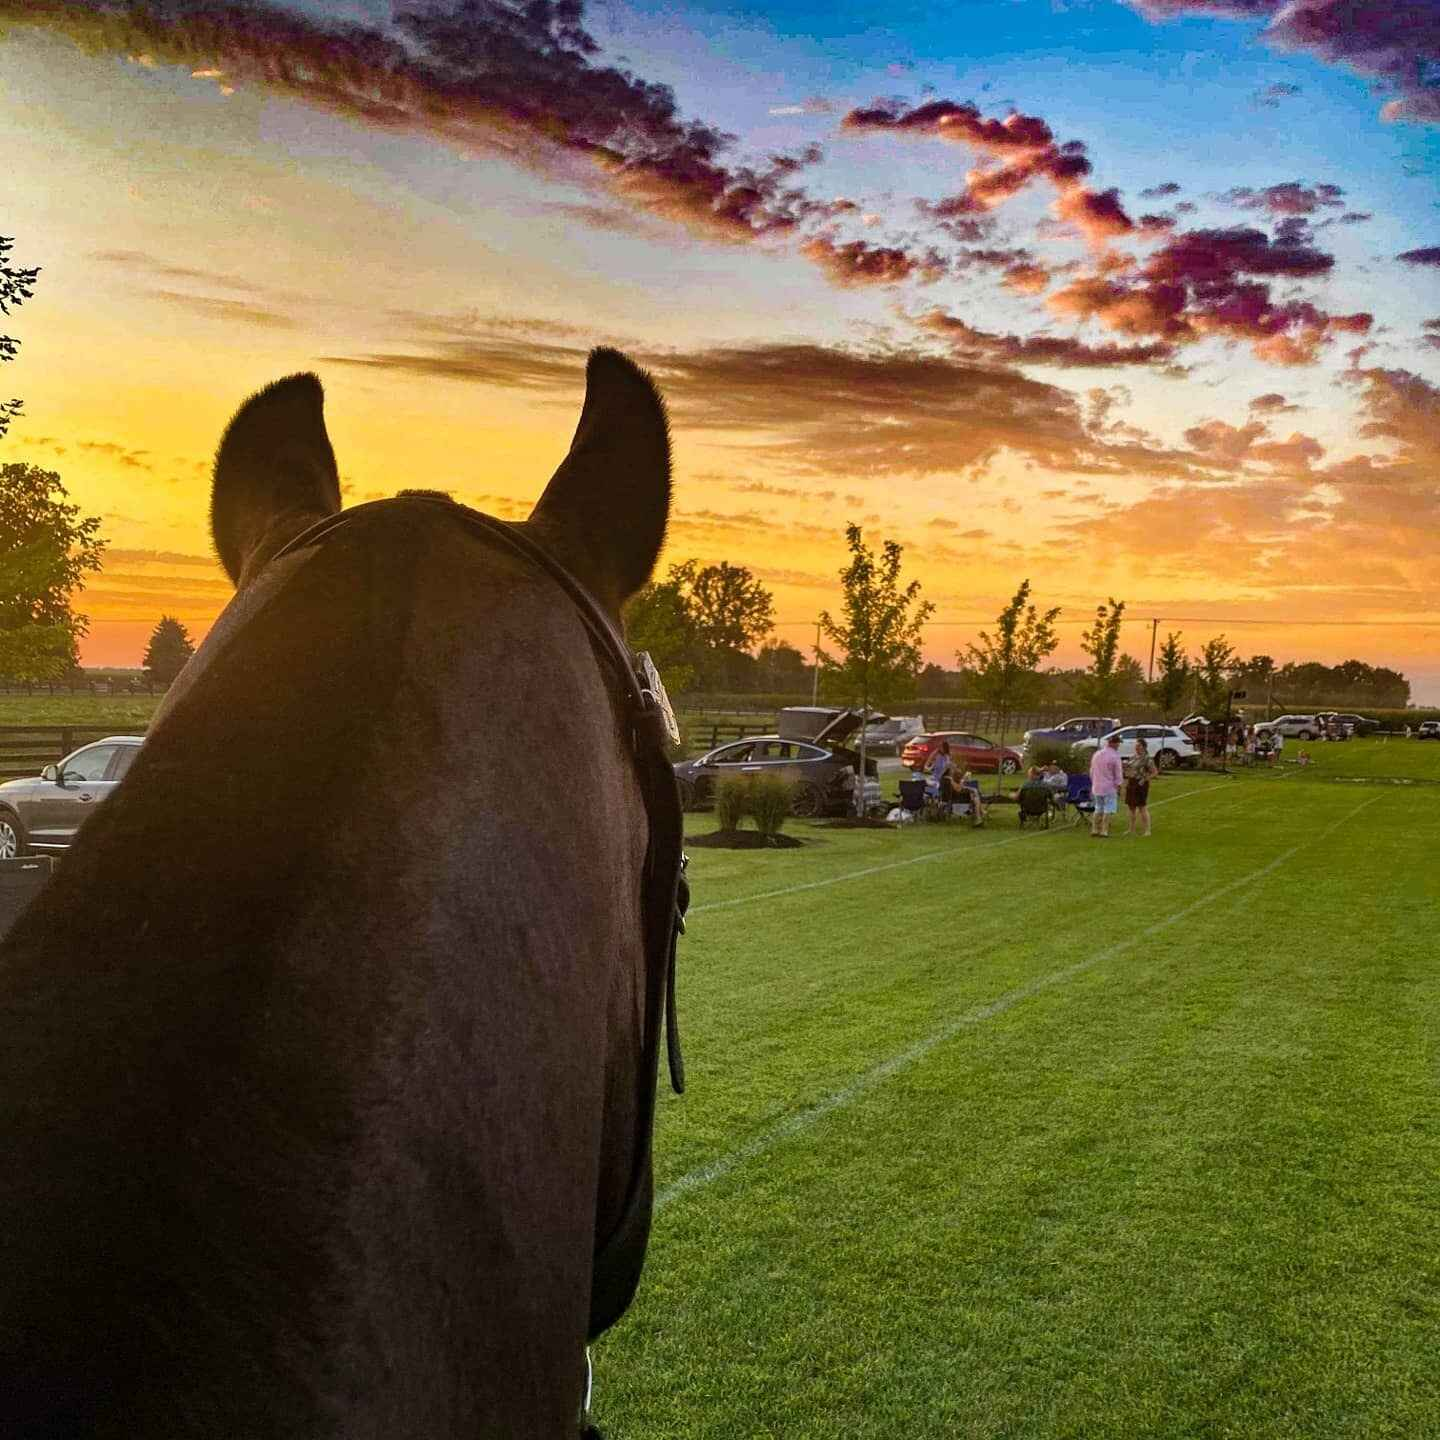 Polo at Sunset - Supporting the IMPD Mounted Police image